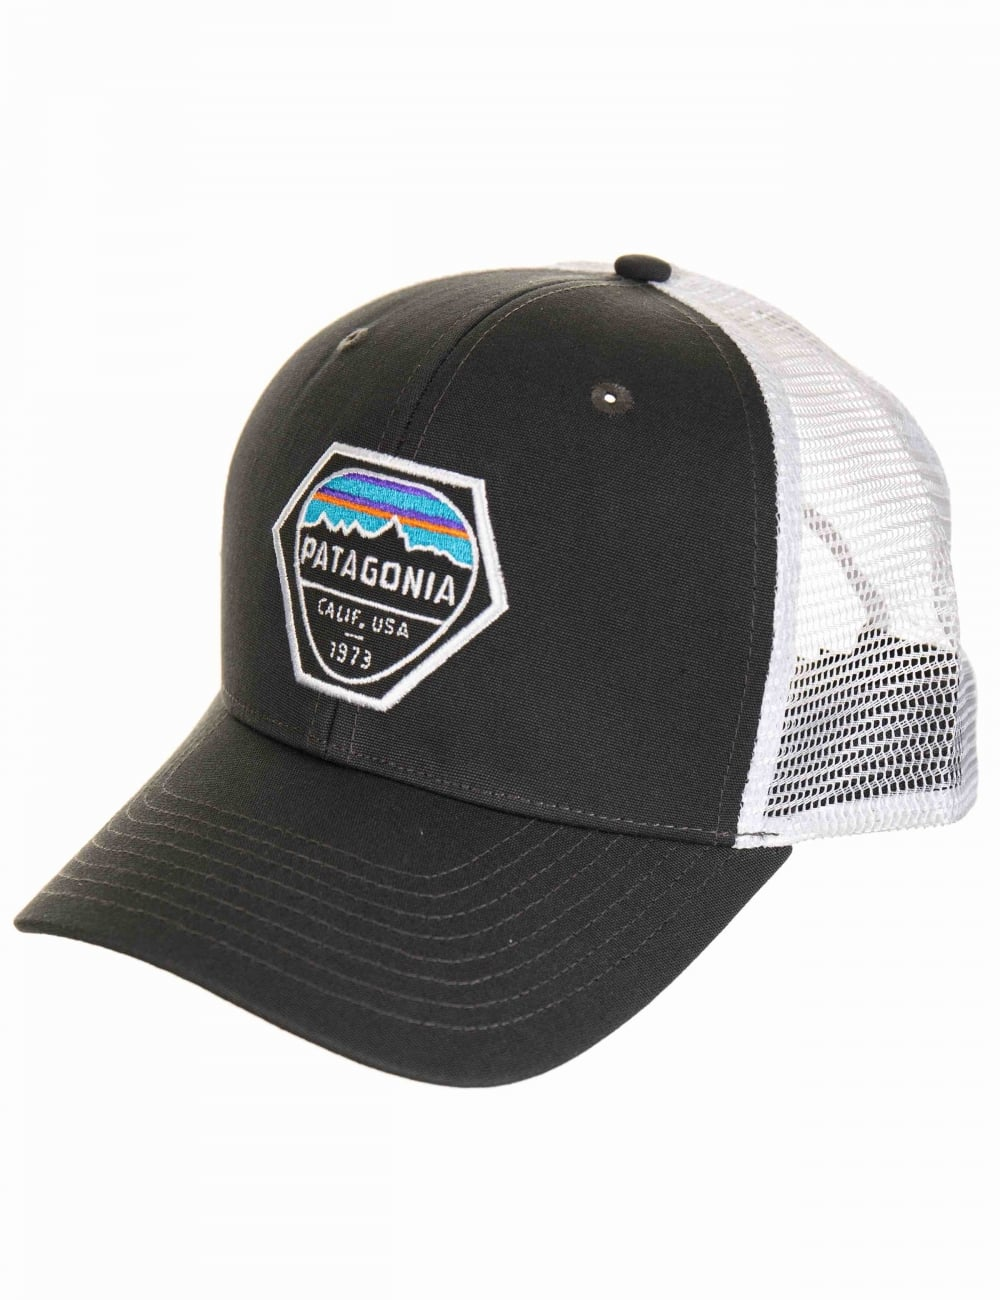 509c93297f6 Patagonia Fitz Roy Hex Trucker Hat - Forge Grey - Accessories from ...